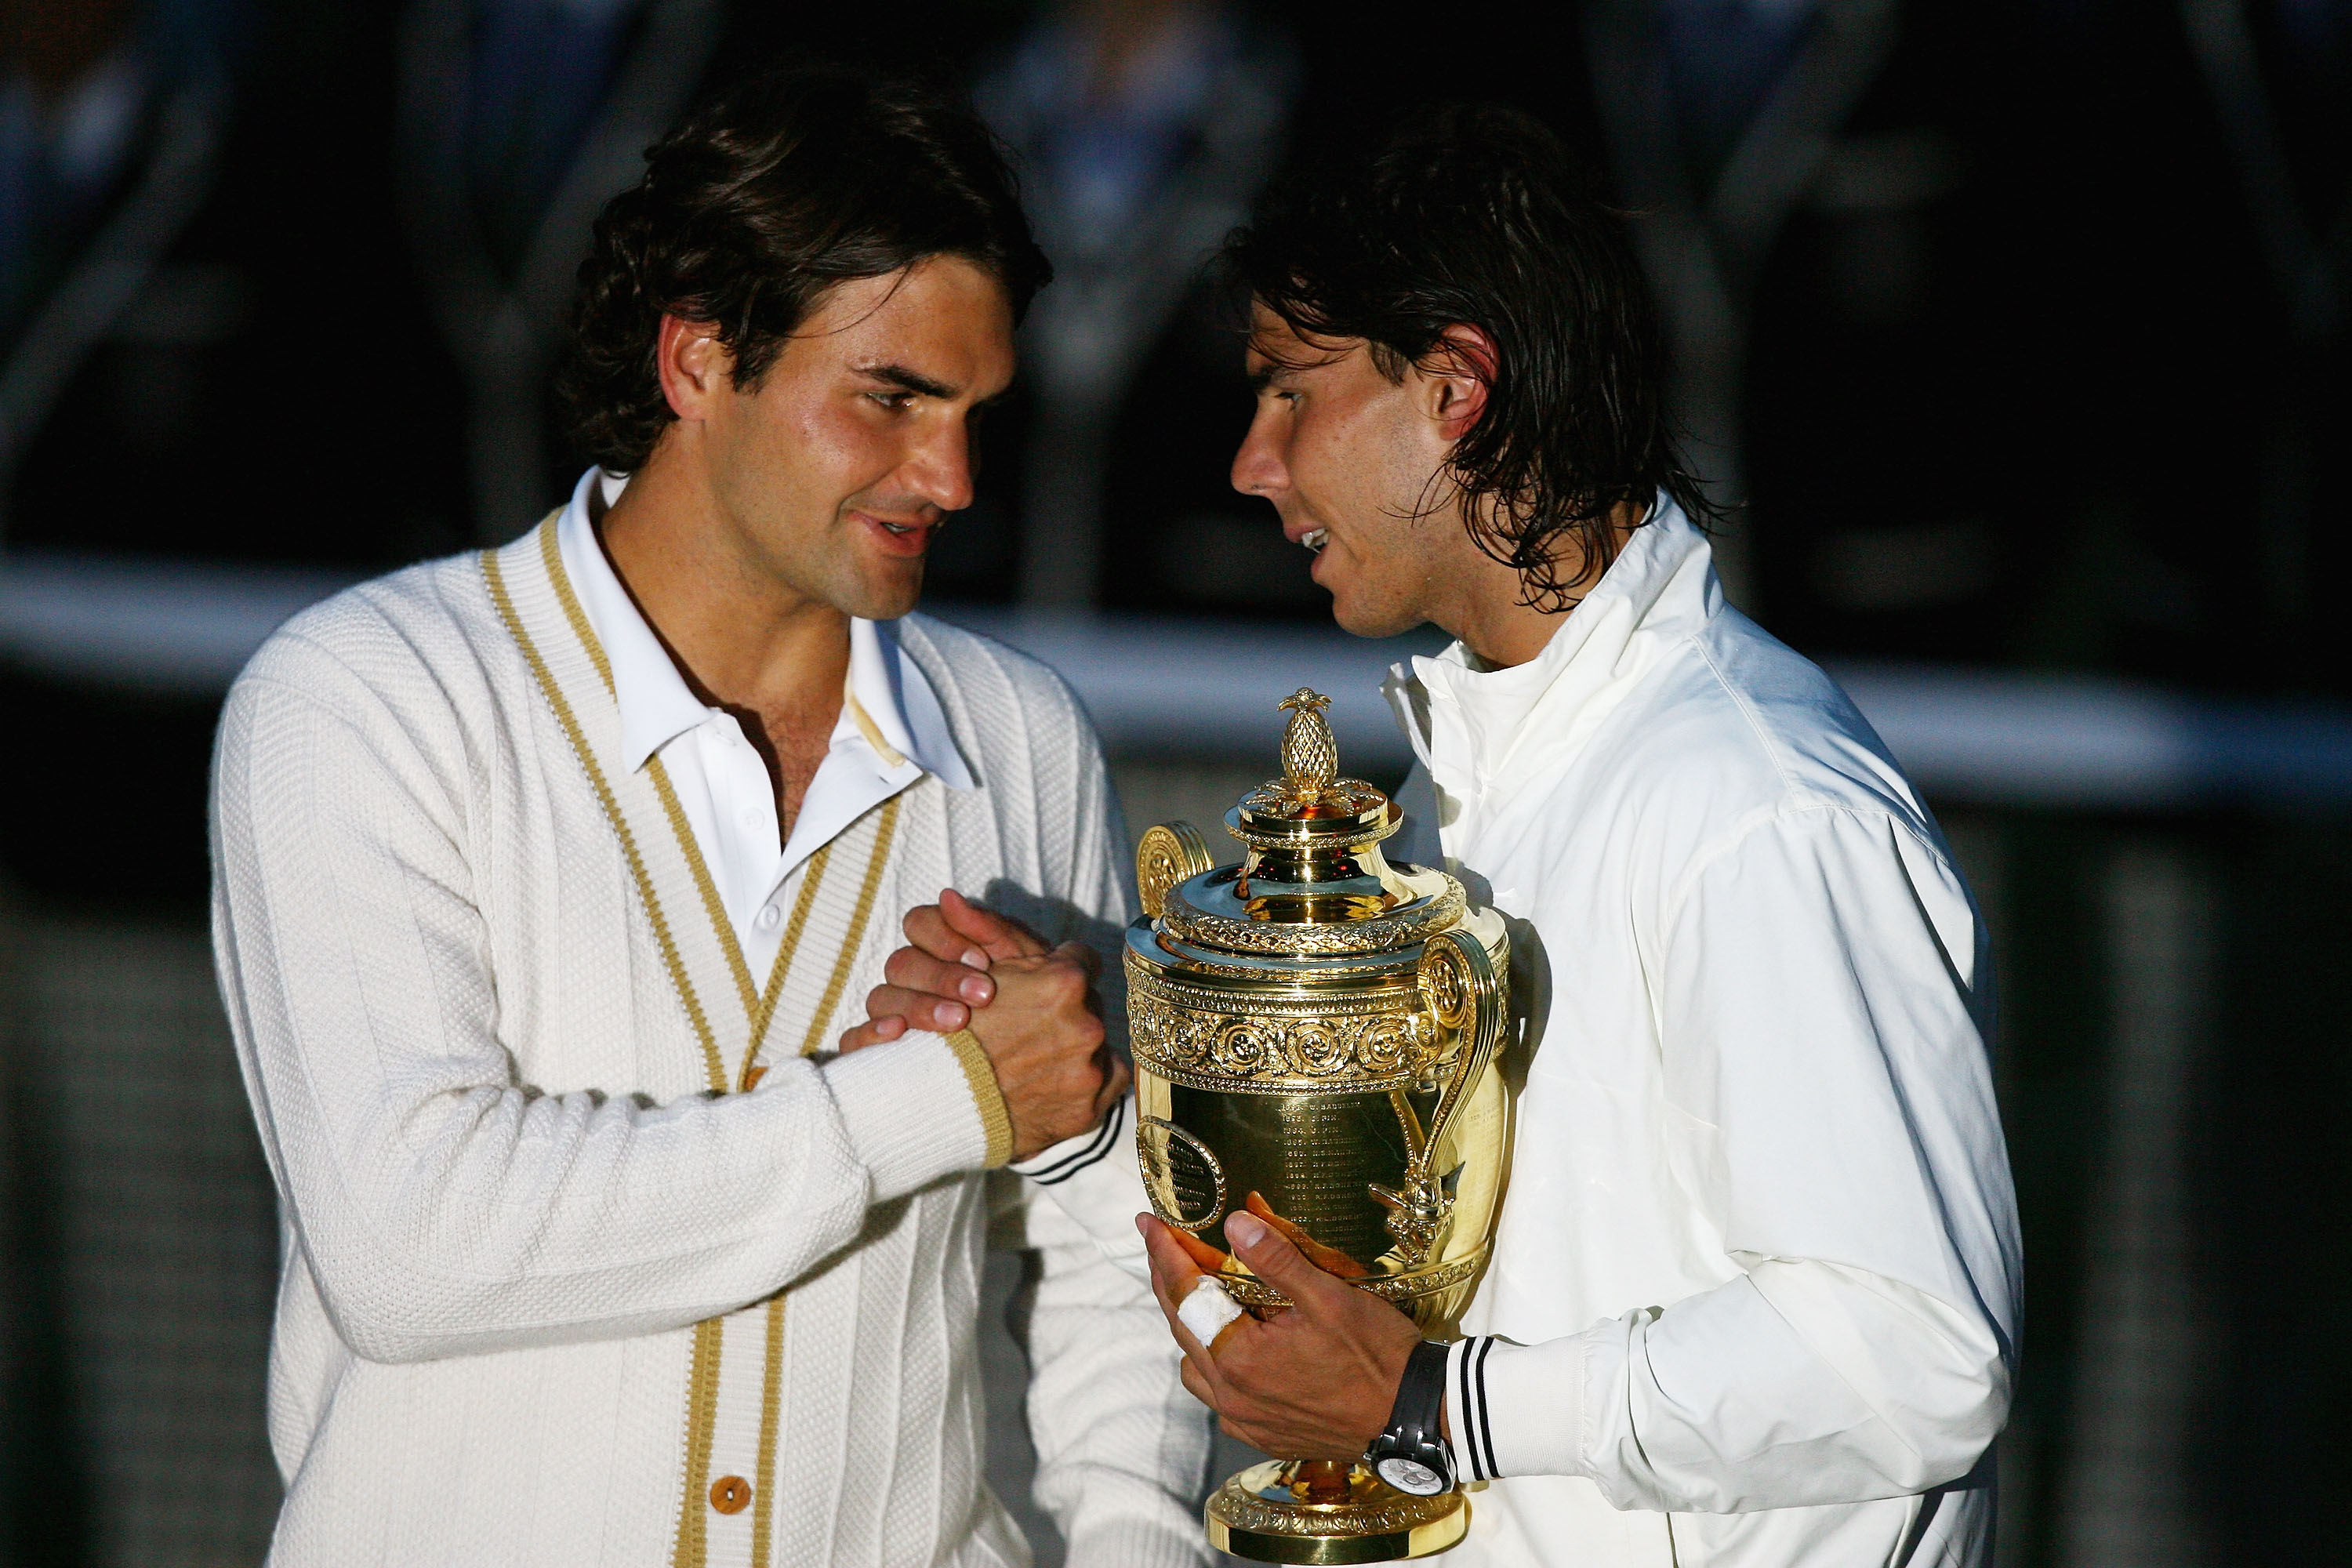 LONDON - JULY 06:  Roger Federer of Switzerland congratulates Rafael Nadal of Spain in winning the Championship trophy during the men's singles Final on day thirteen of the Wimbledon Lawn Tennis Championships at the All England Lawn Tennis and Croquet Clu